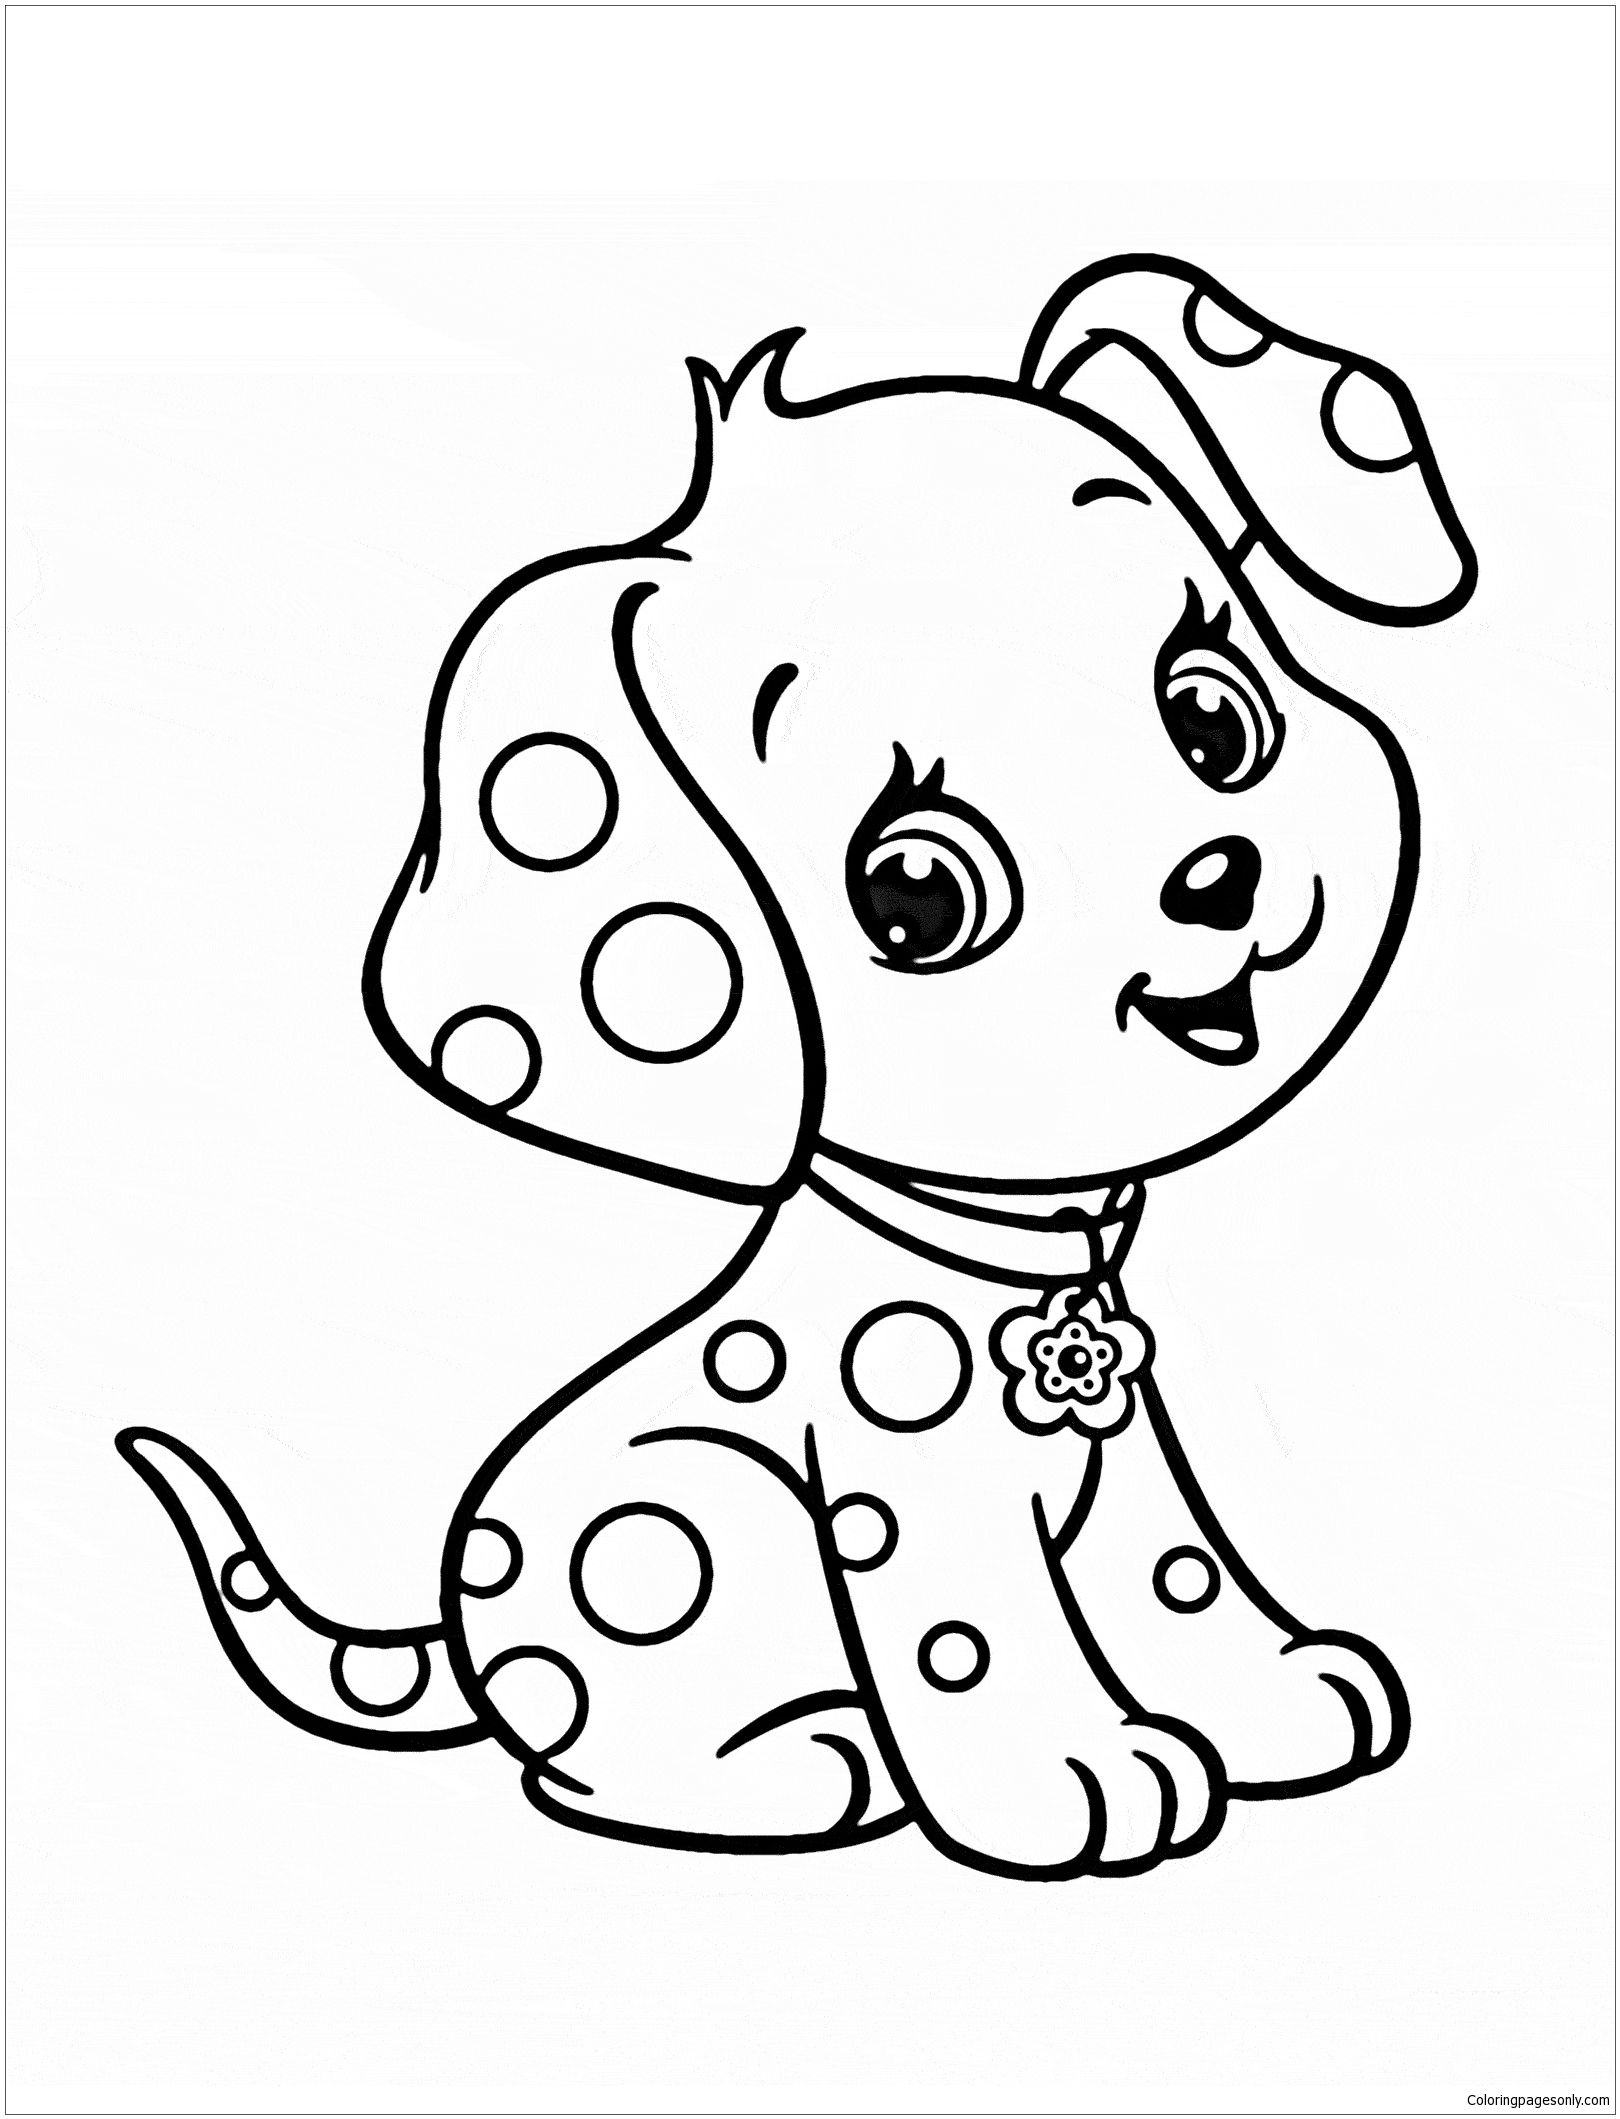 Cute Puppy 22 Coloring Page  Animal coloring books, Puppy coloring